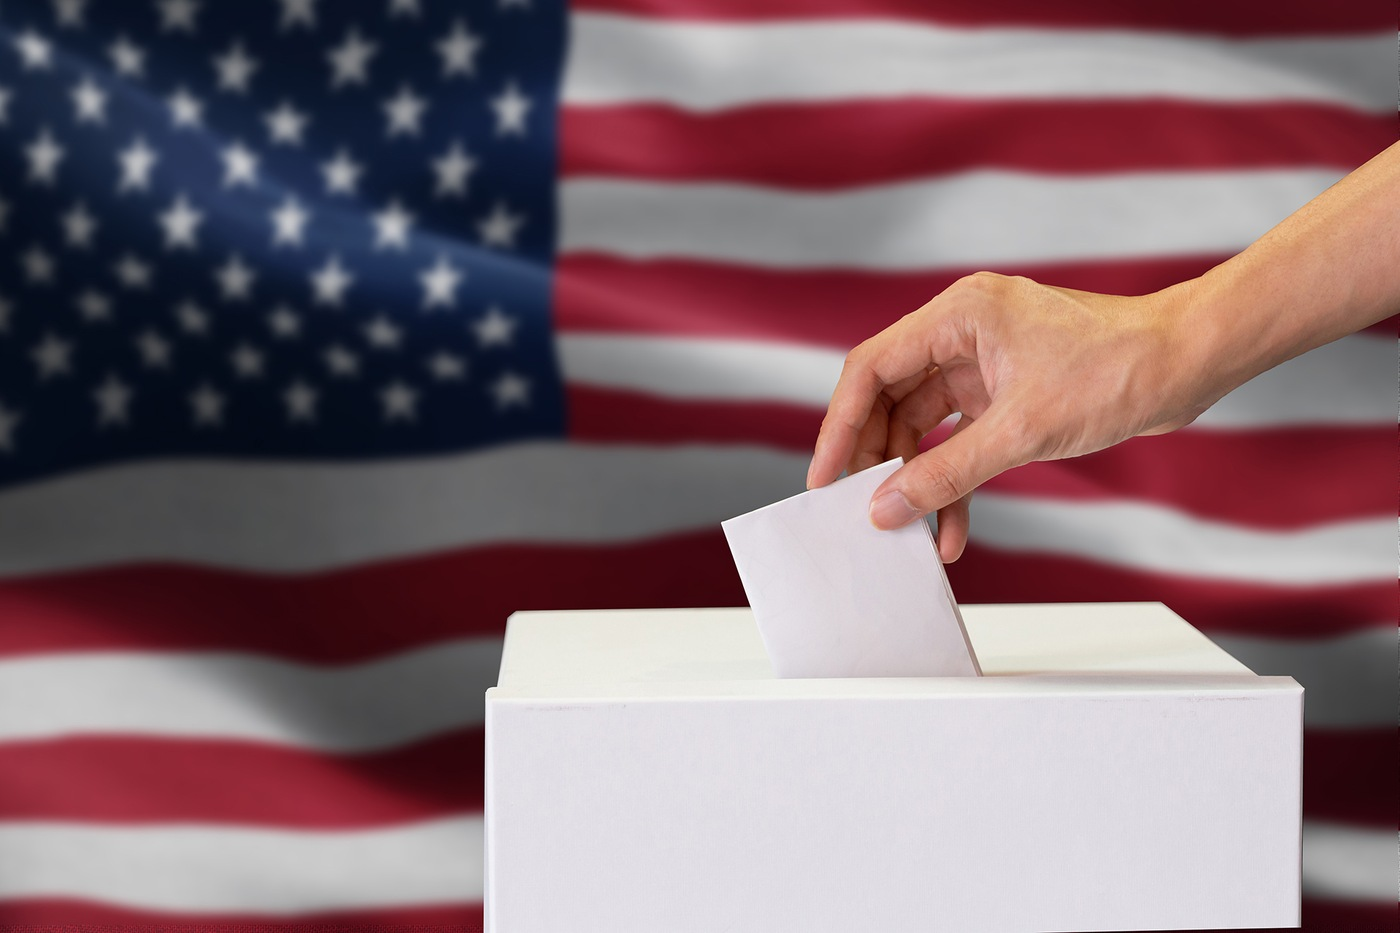 Stock image depicting a person placing a ballot into a ballot box with an American flag background